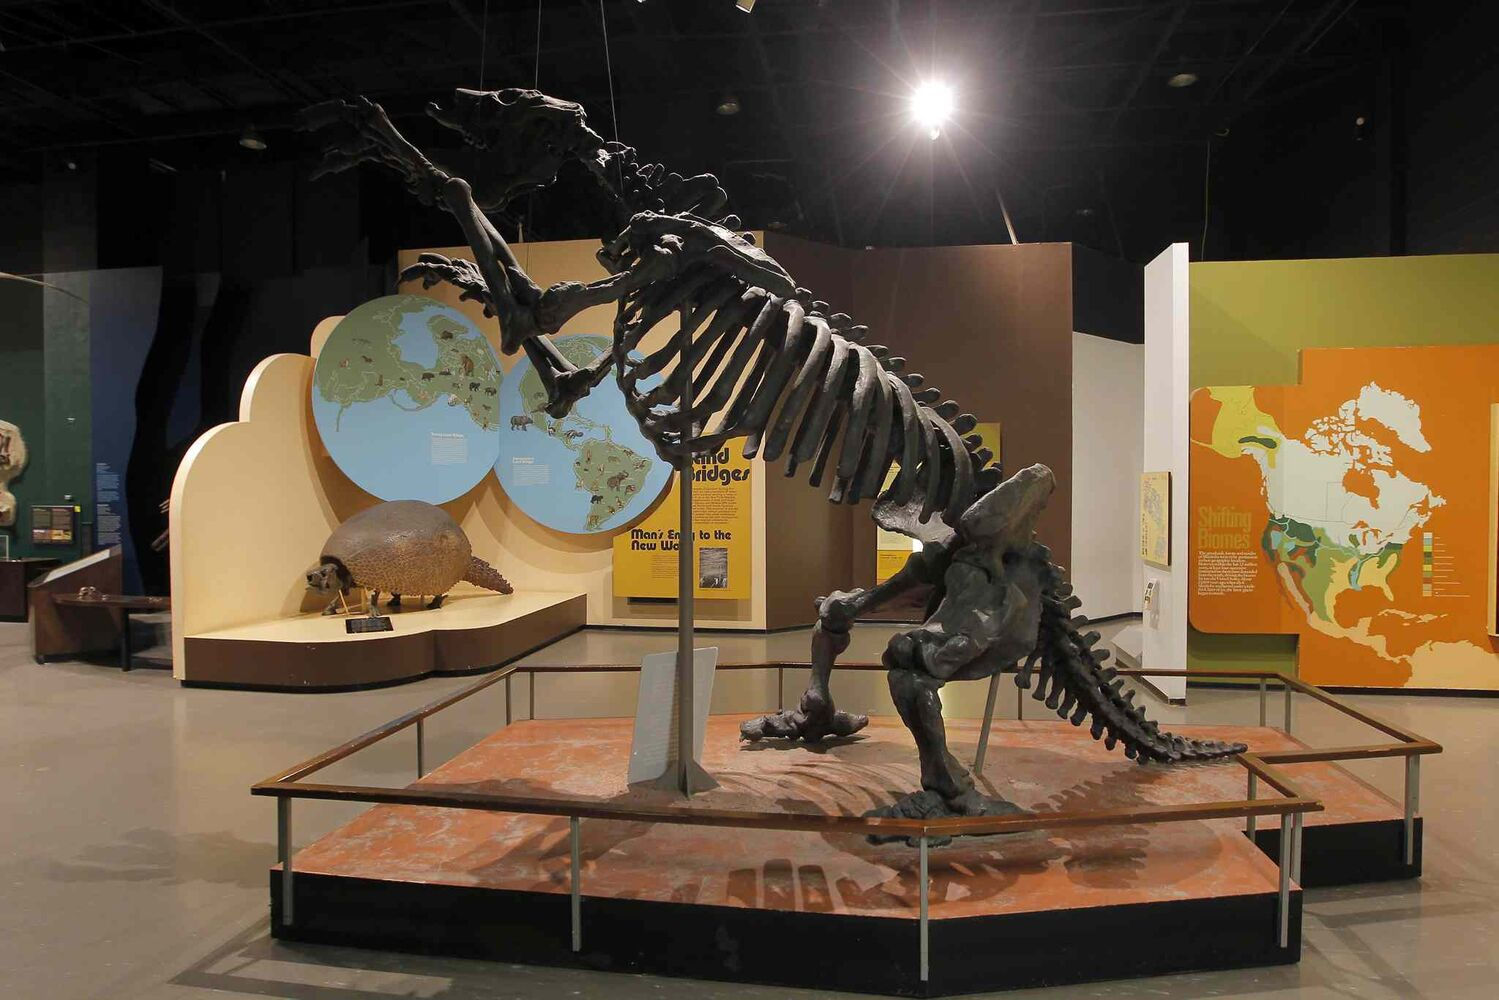 The Manitoba Museum. This part of the museum shows the richness of the prehistoric animals that once inhabited the prairies. BORIS MINKEVICH/WINNIPEG FREE PRESS